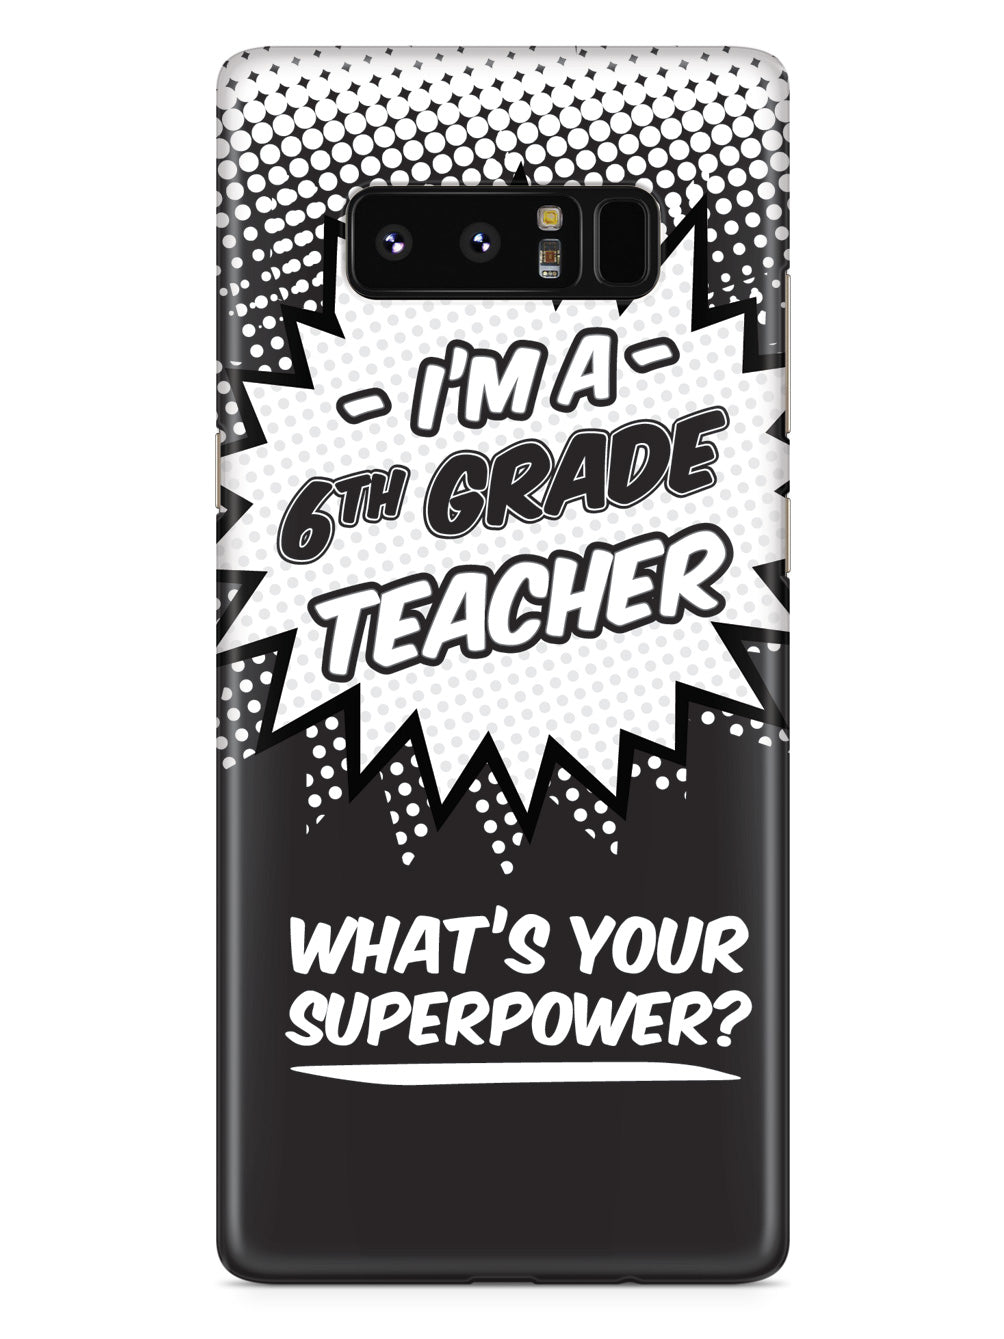 6th Grade Teacher - What's Your Superpower? Case